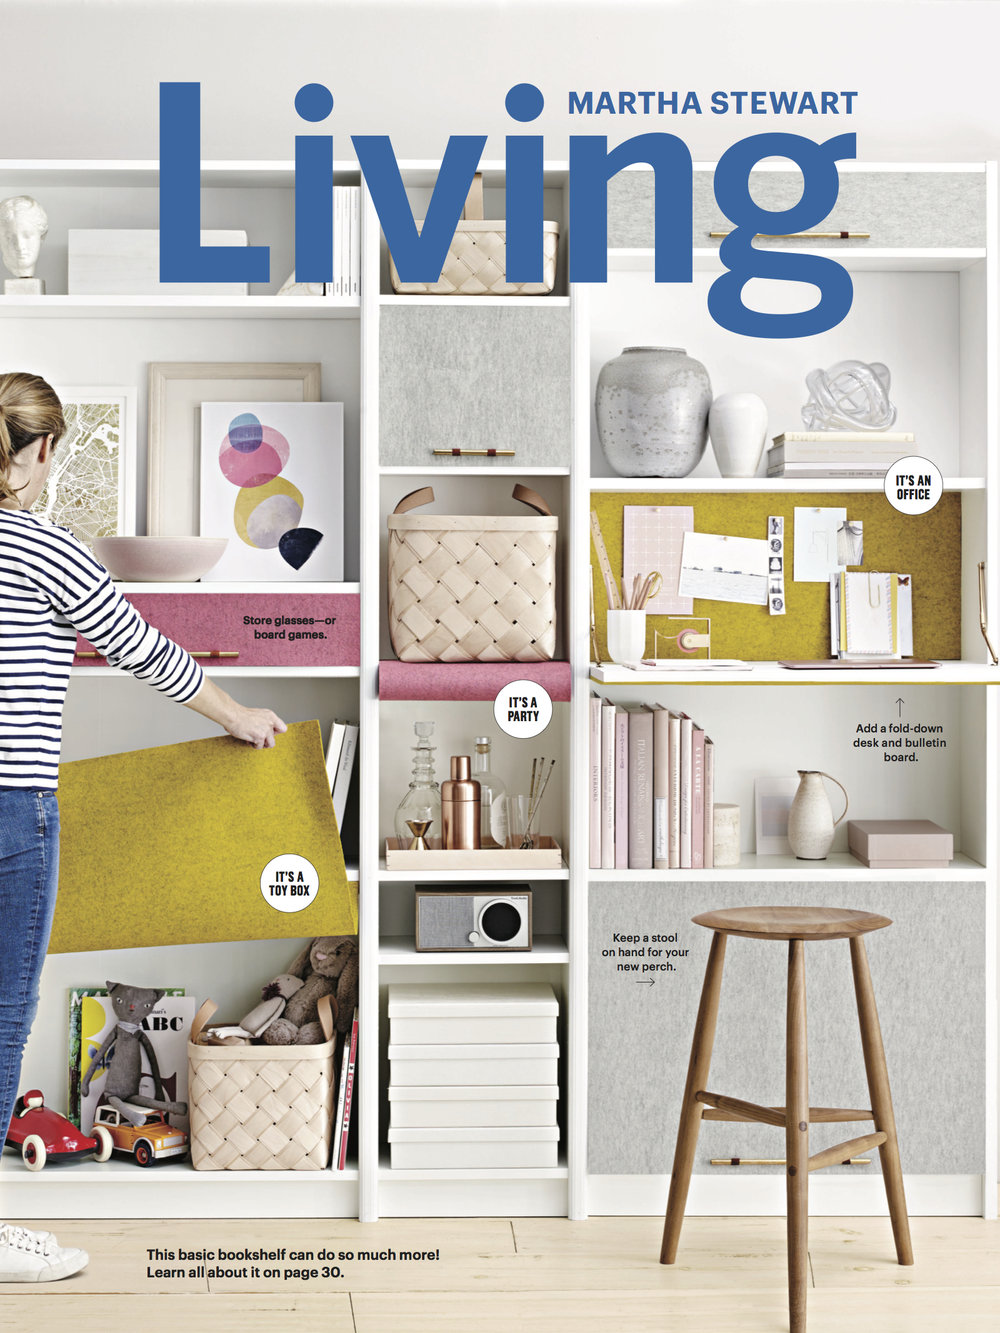 Martha Stewart Living September 2017 Cover. Prev / Next